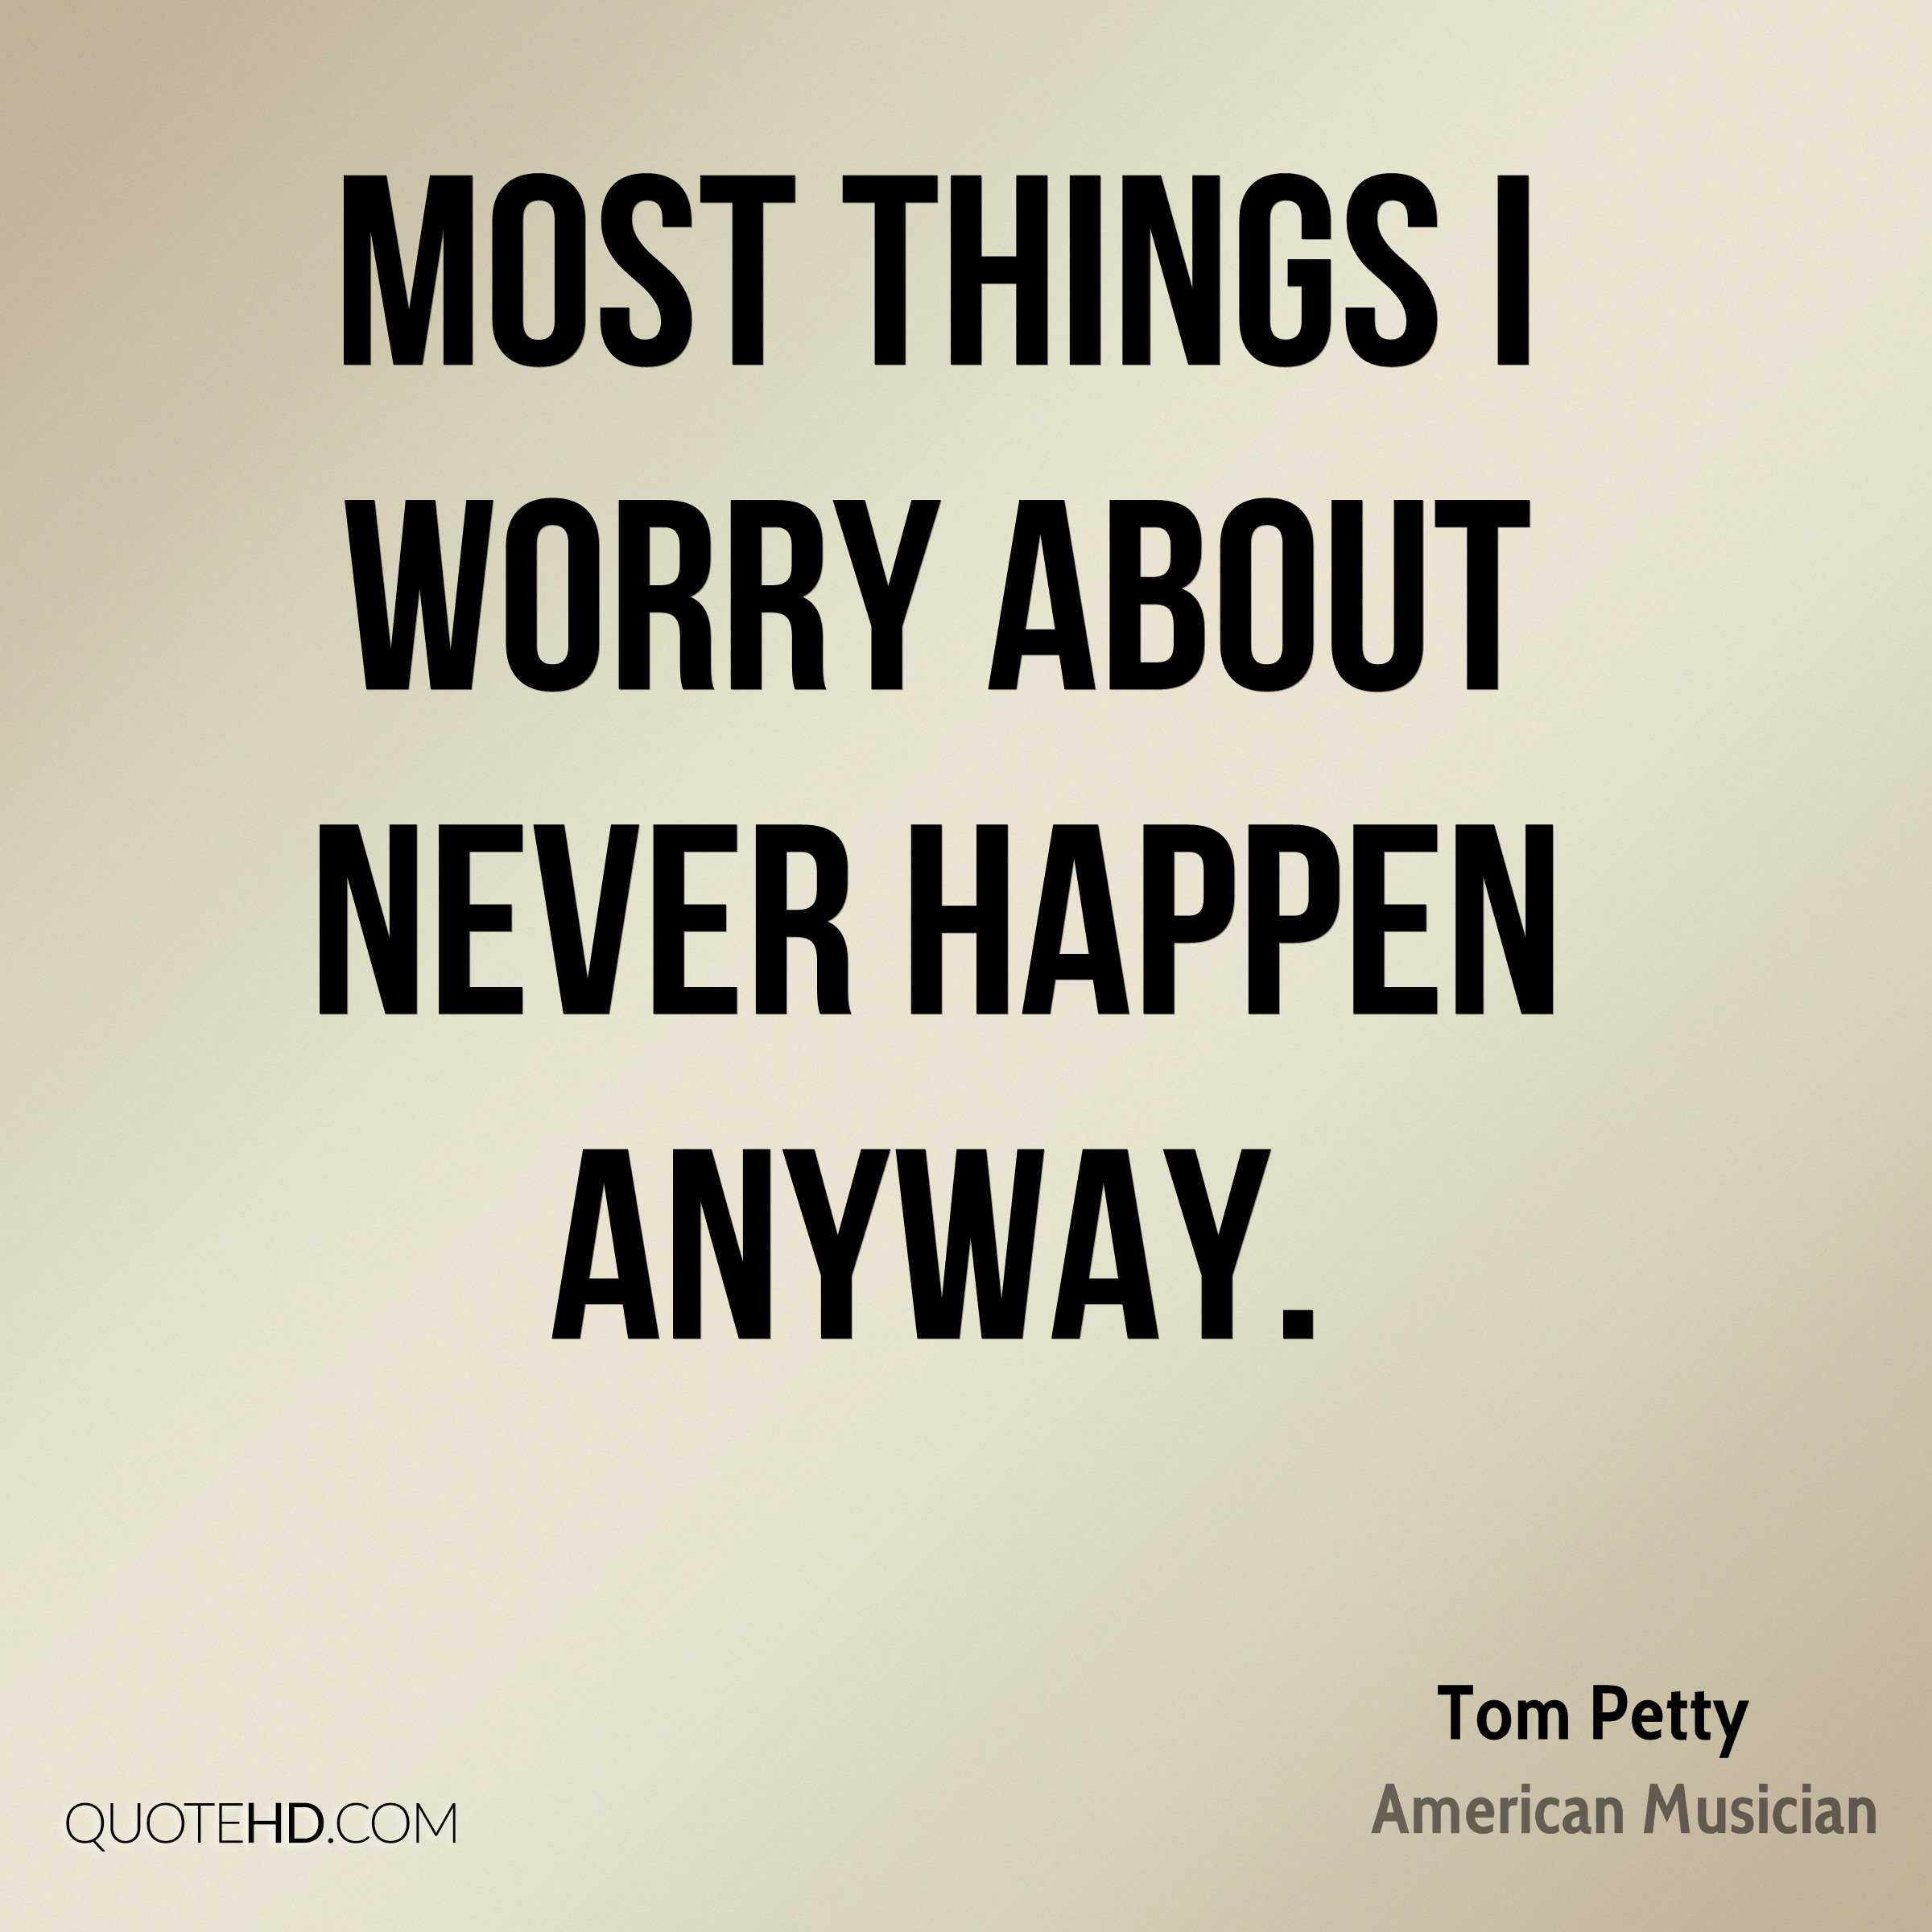 Tom Petty Quotes | QuoteHD